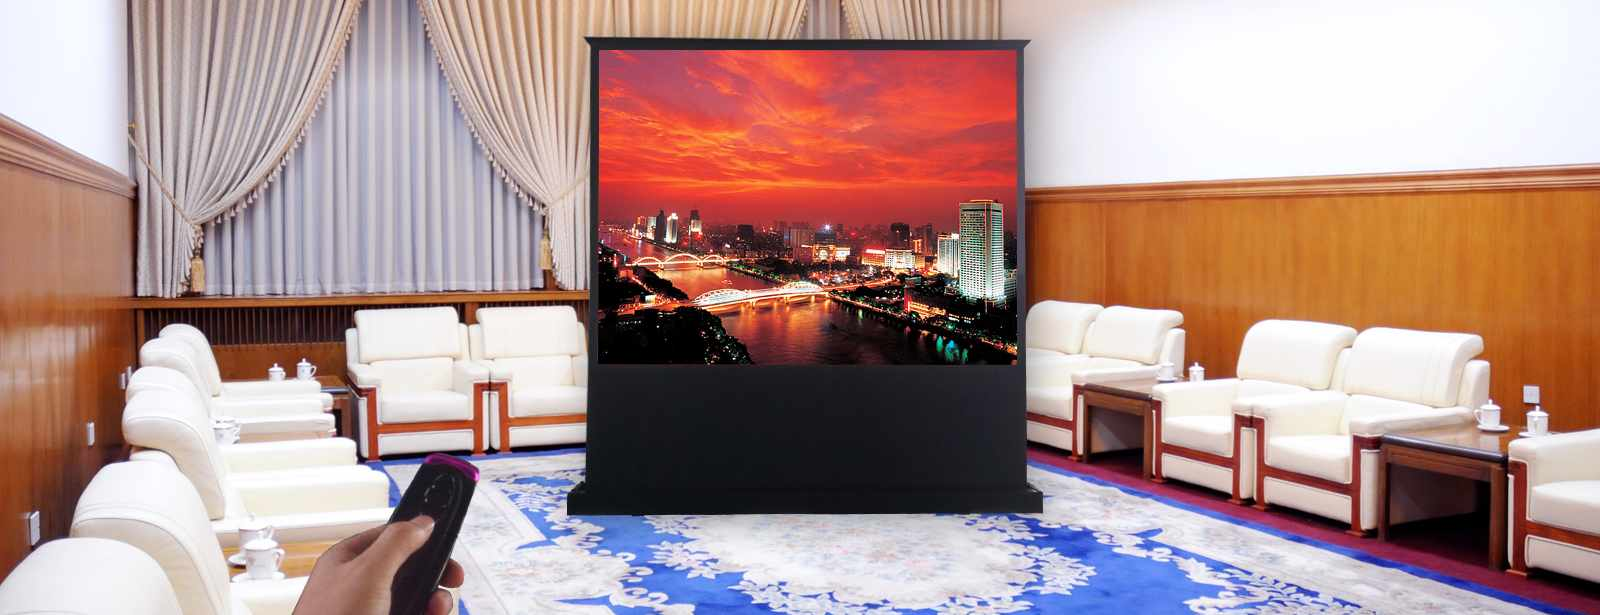 category-Pull Up Projector Screens Floor Rising Screen - Xiong-yun-XY Screens-img